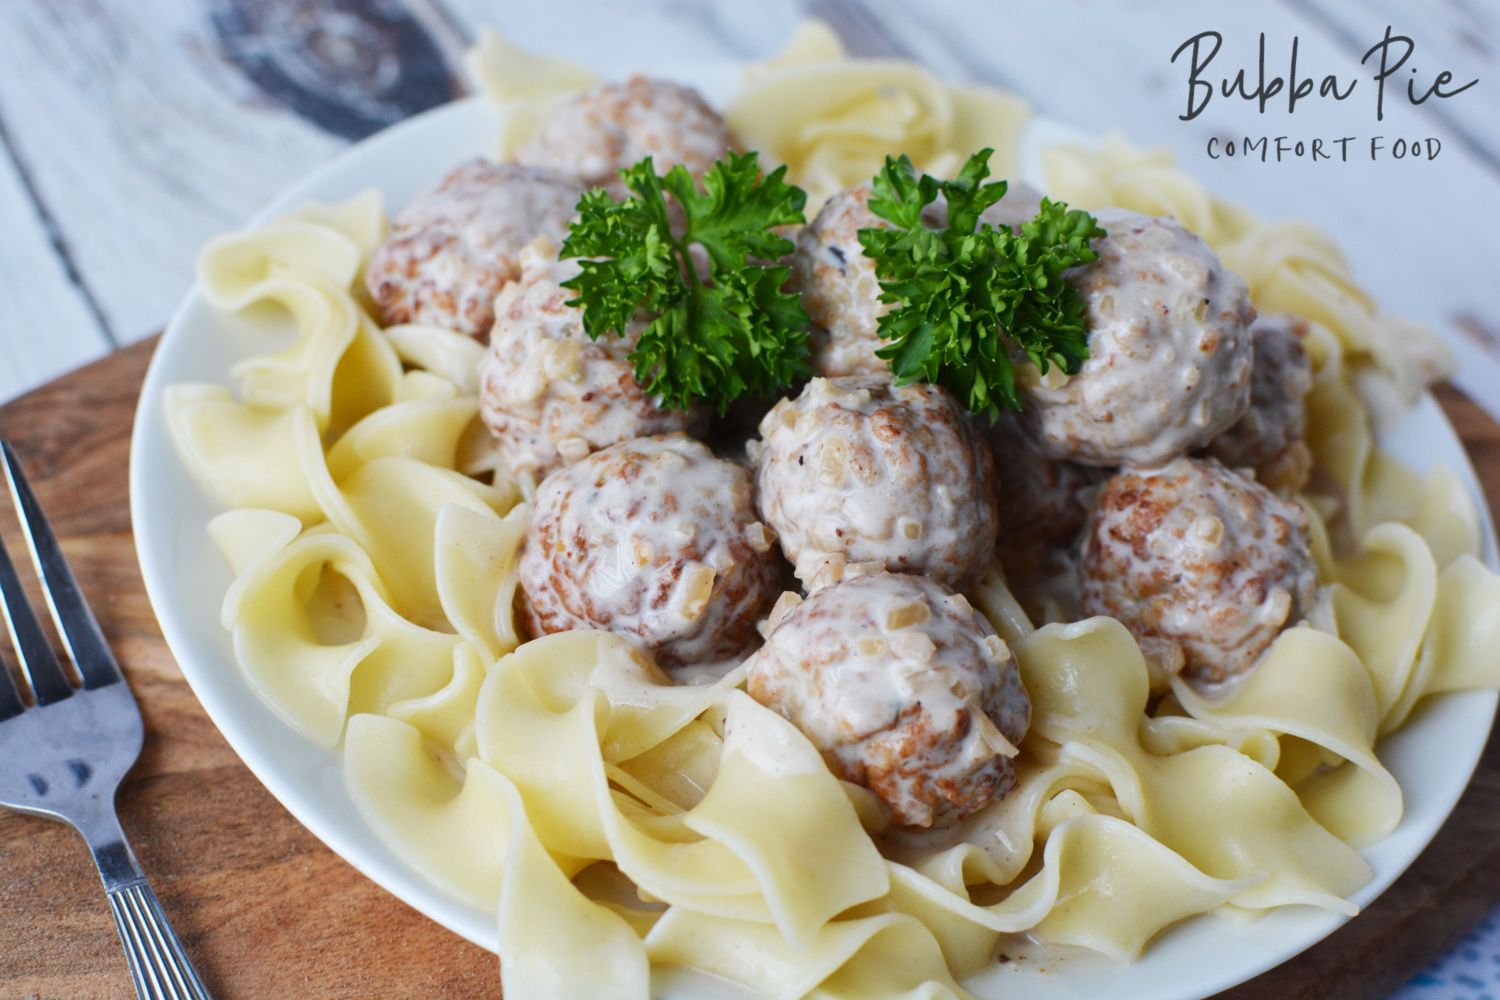 Swedish Meatballs Crock Pot Recipe is the ultimate slow cooker comfort food